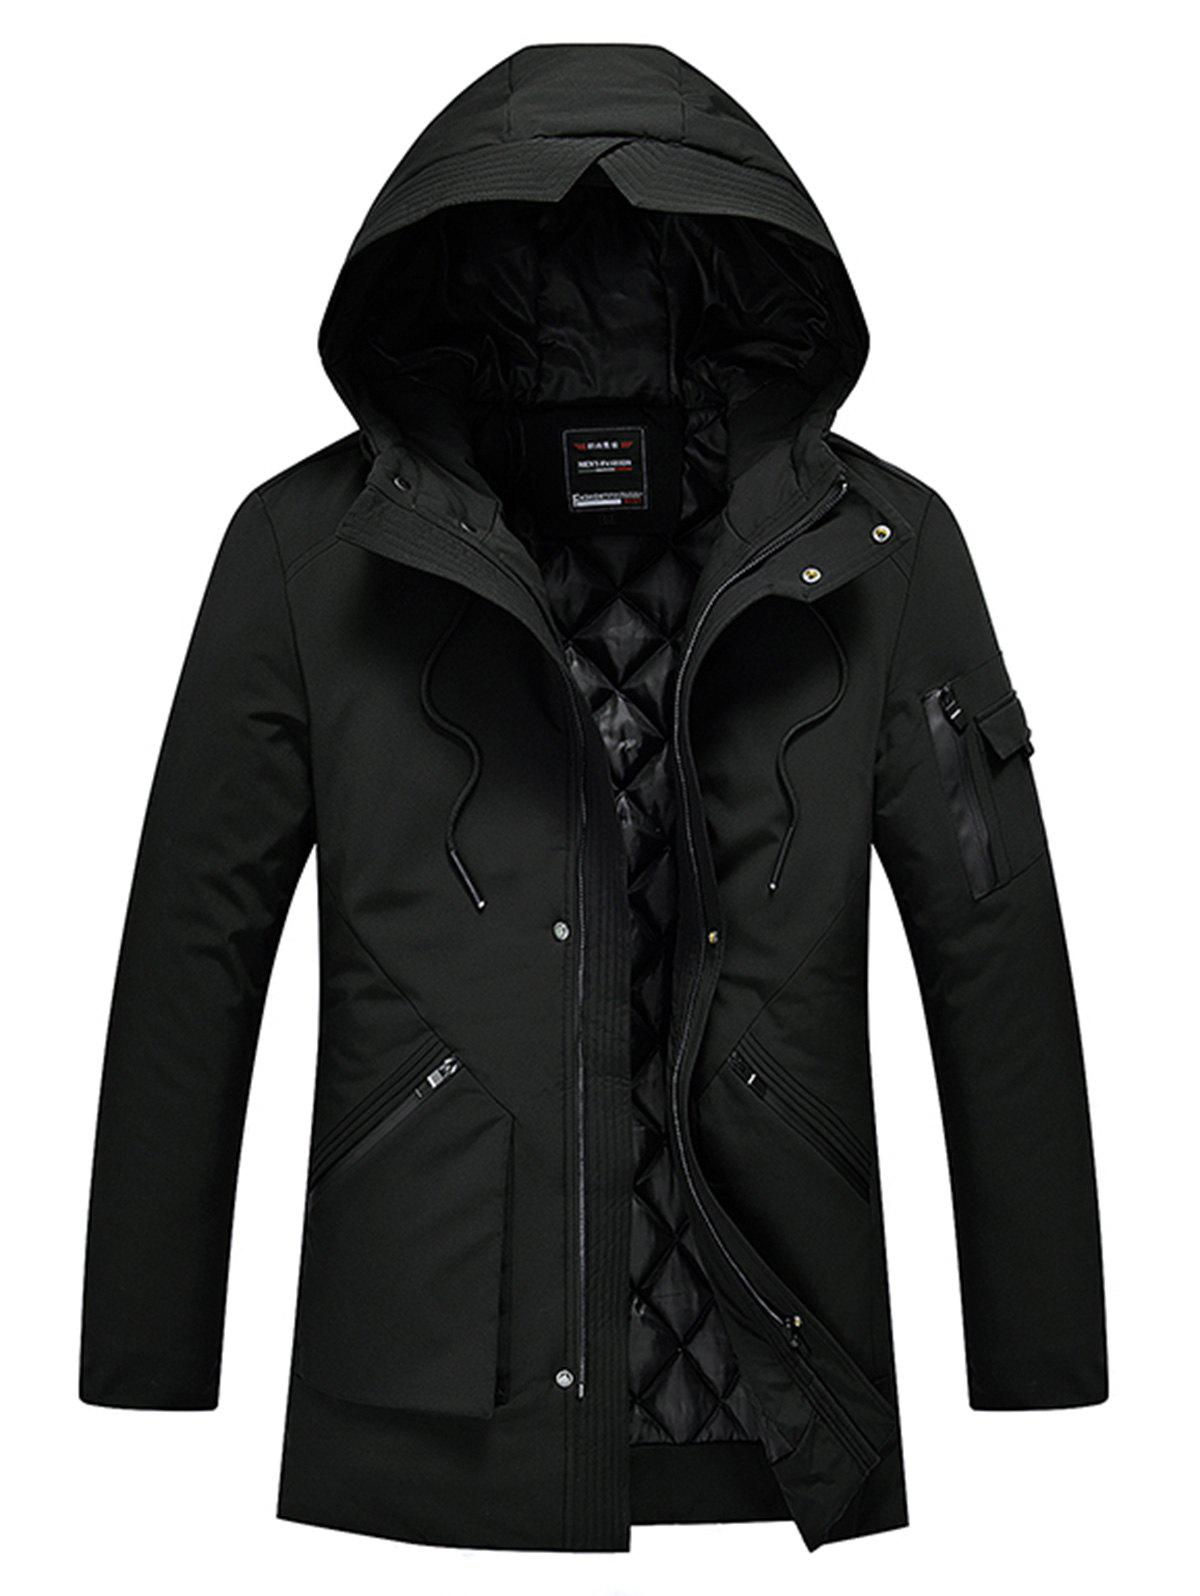 Zip Up Manteau à capuche rembourré - Noir 5XL